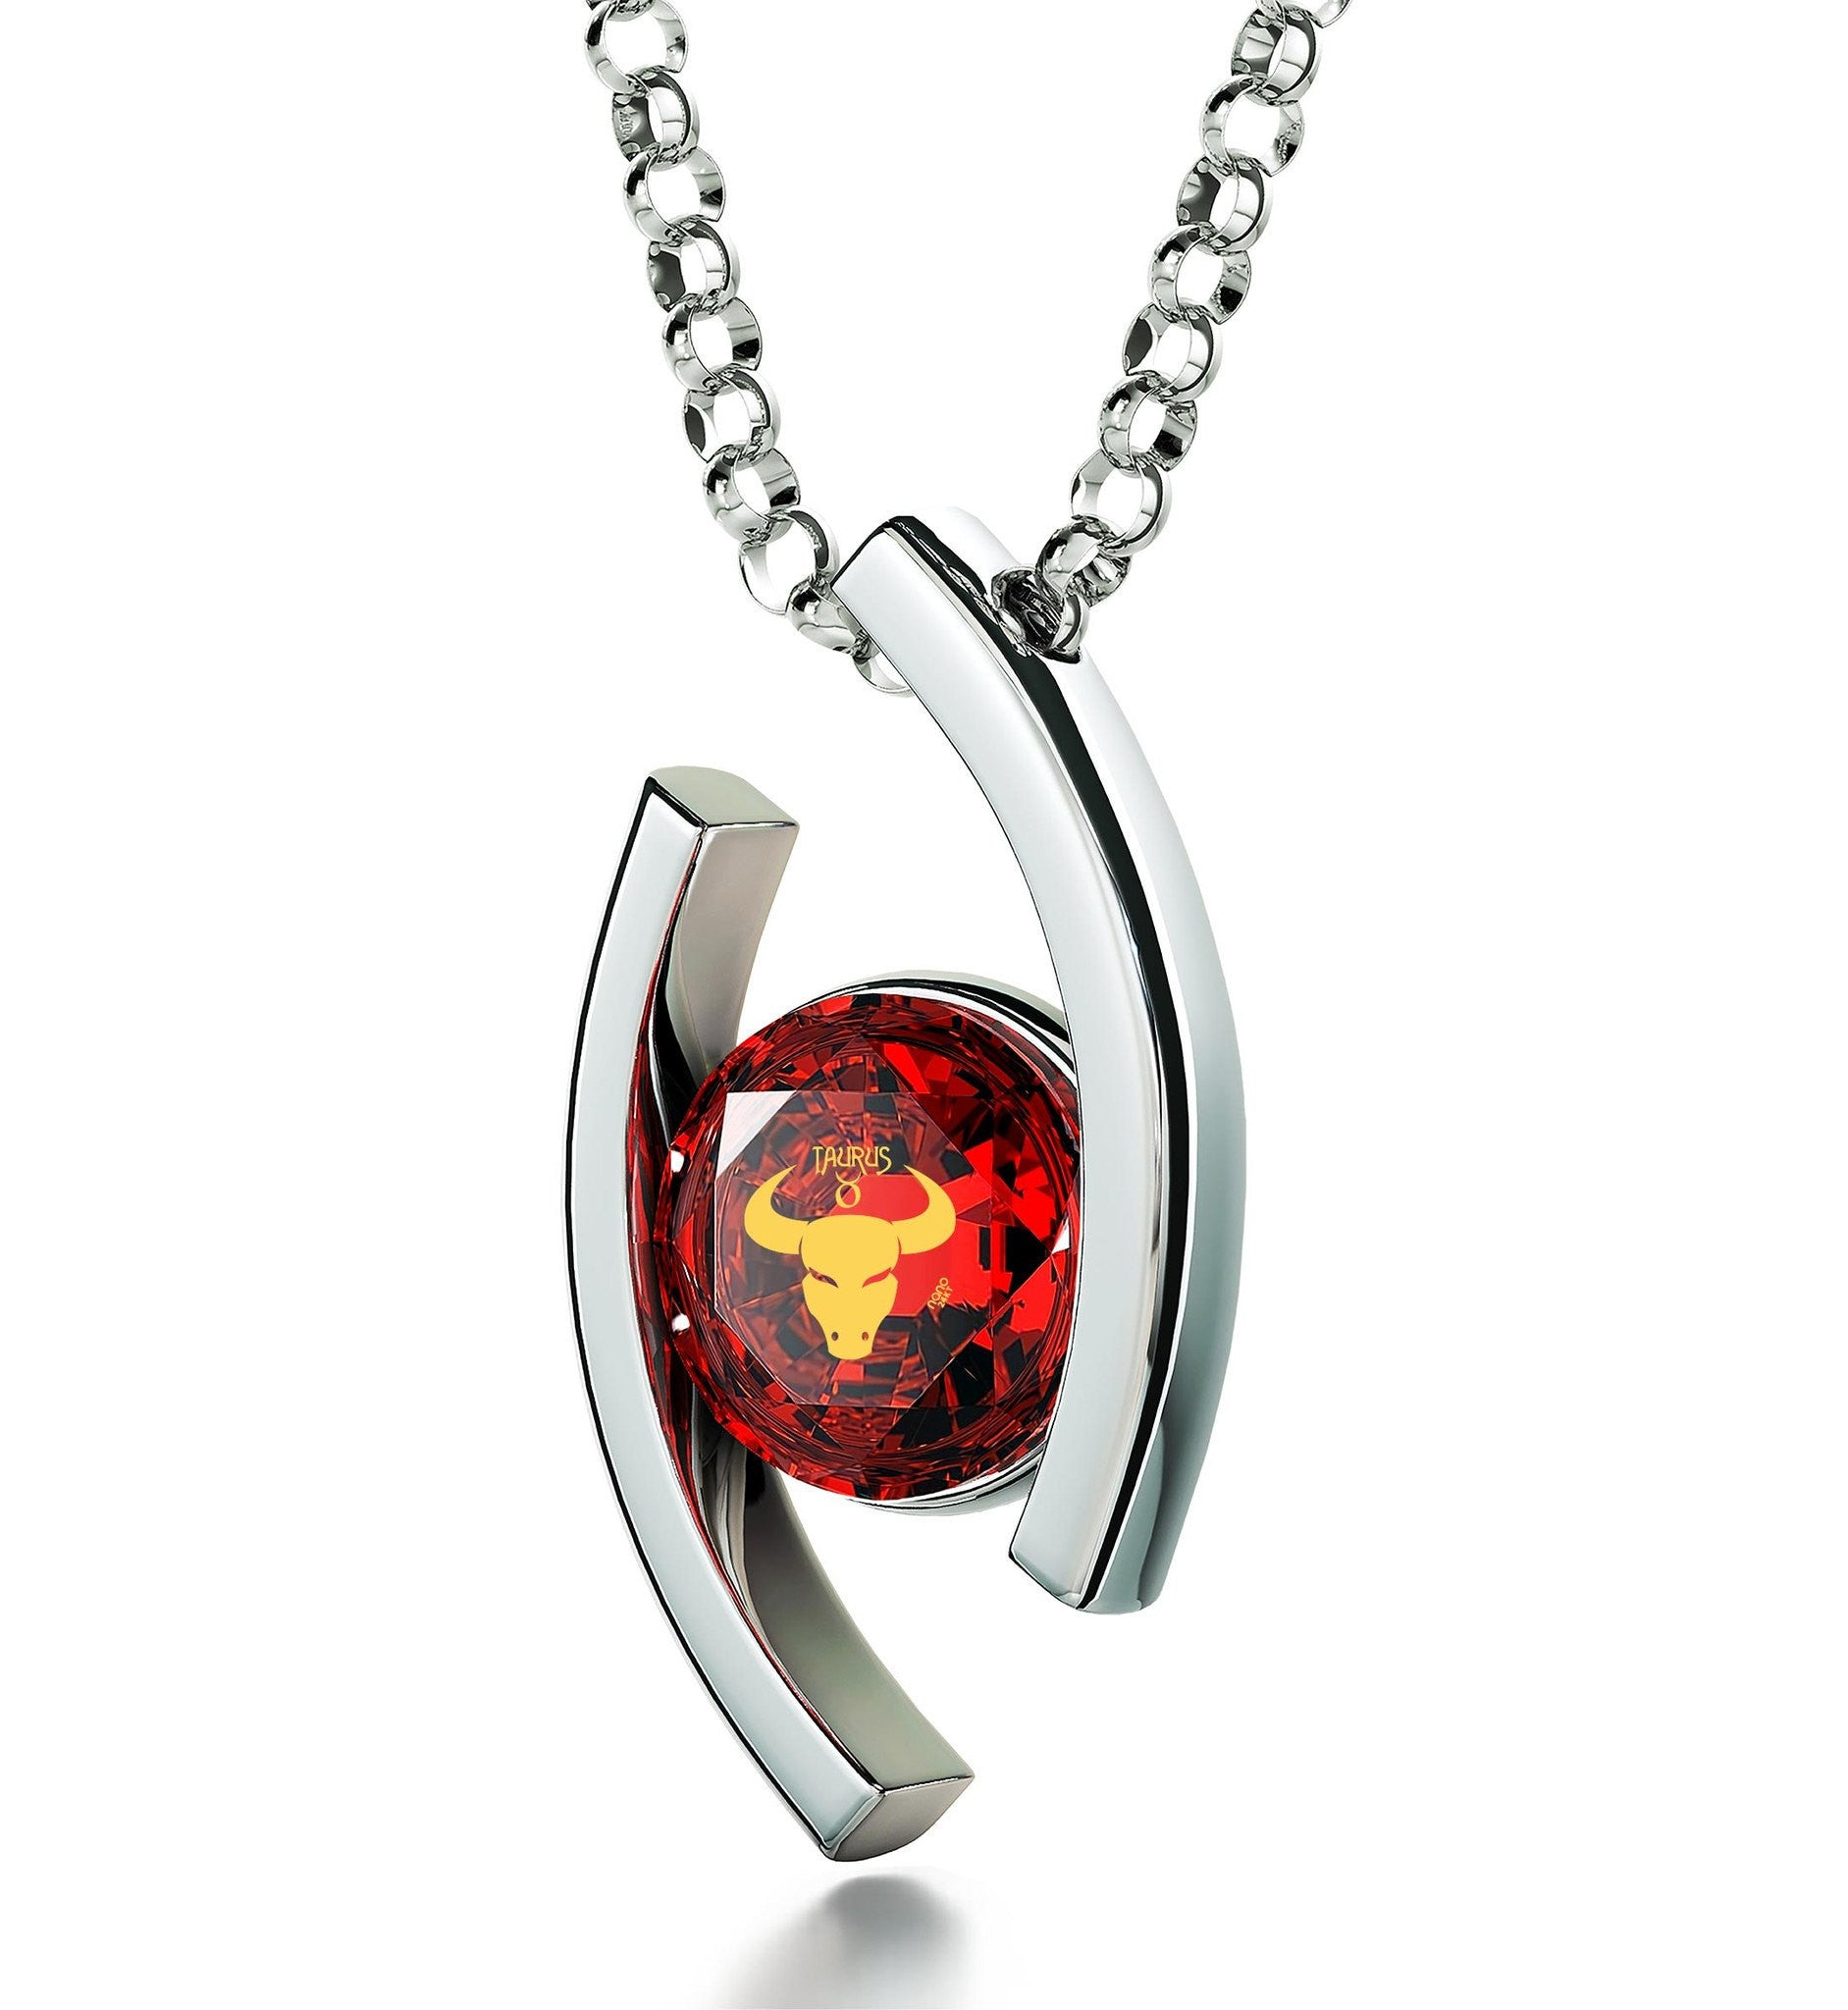 Taurus Jewelry With Zodiac Imprint Top Valentines Gifts For Her Cool